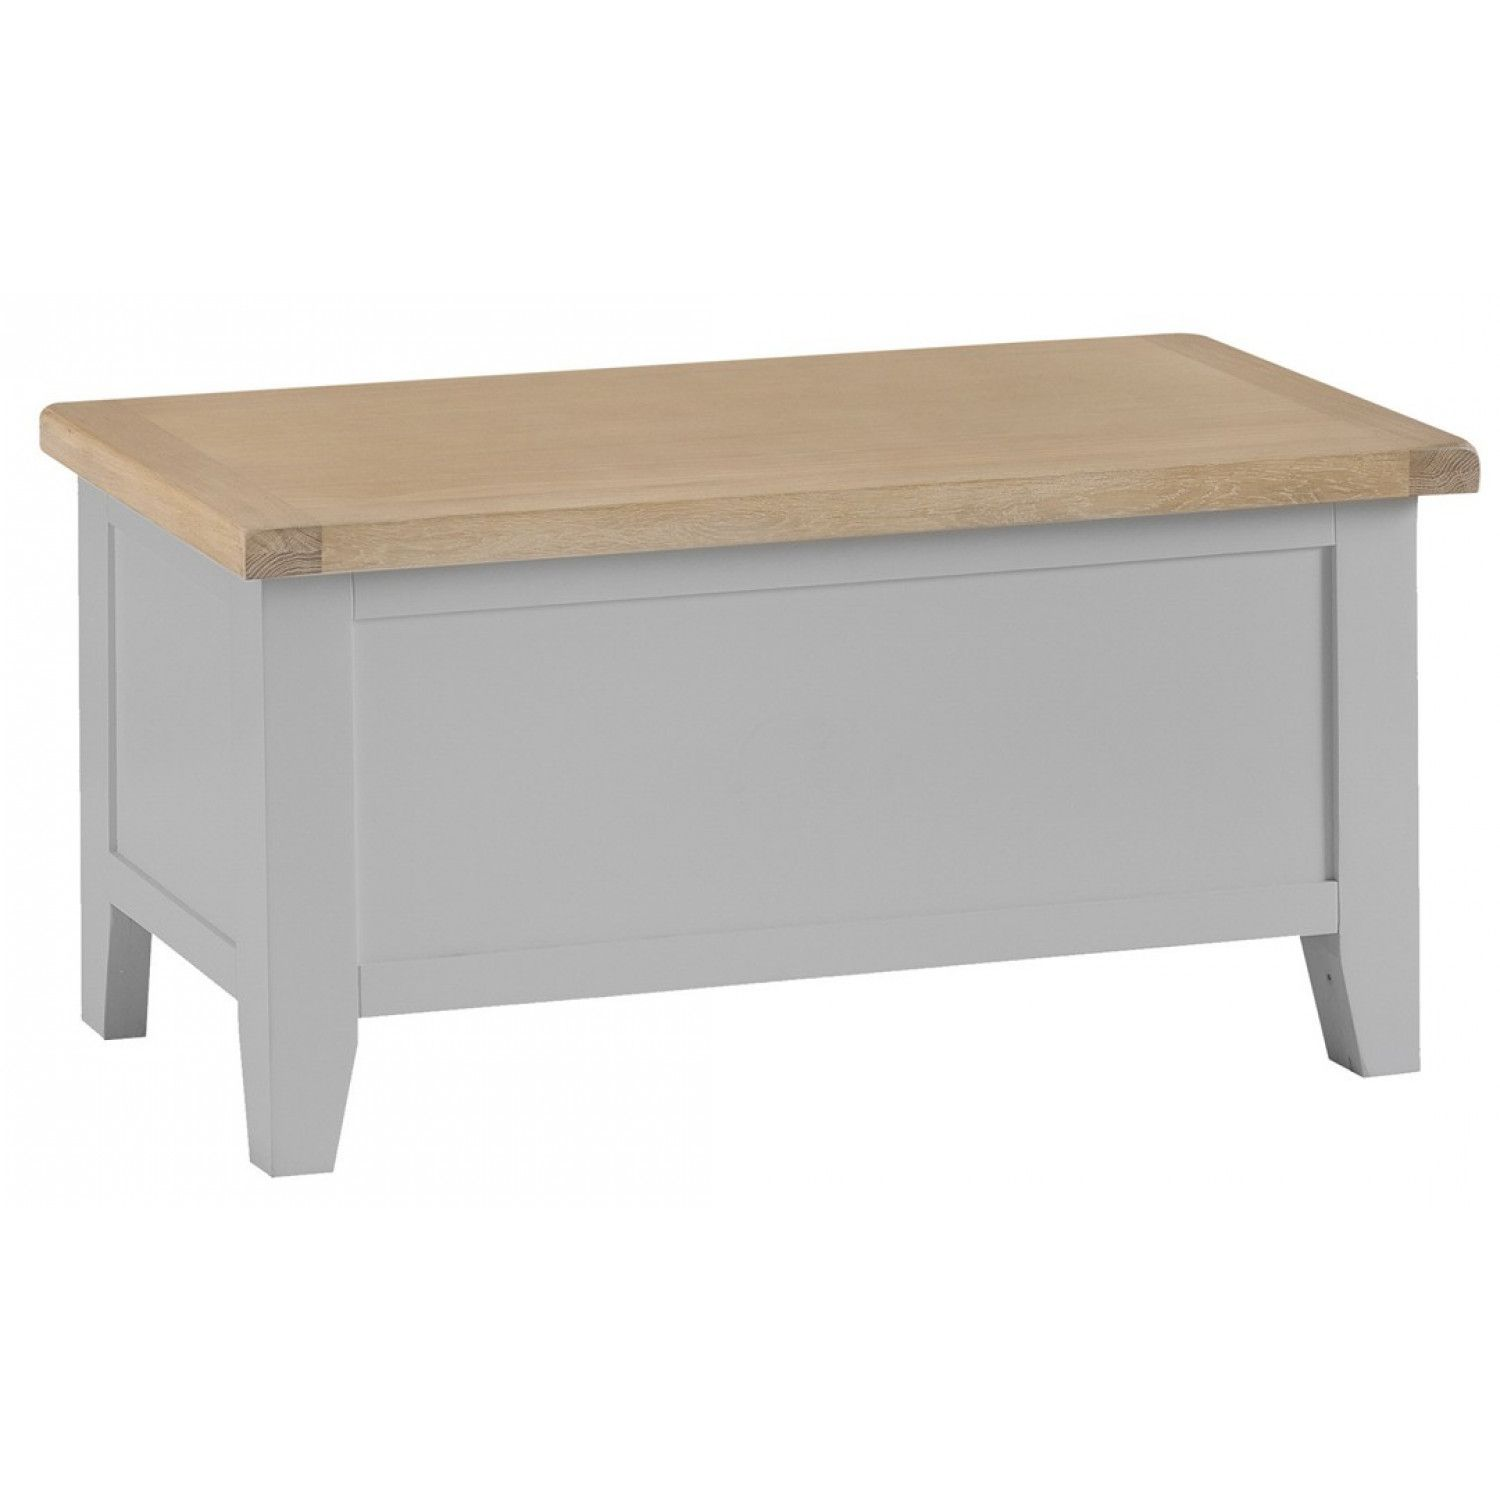 This Bonsoni Millstone Grey Blanket Storage Box Has Painted Finish With Lime Washed Oak Tops And Hinged Grey Painted Furniture Blanket Box Painted Blanket Box